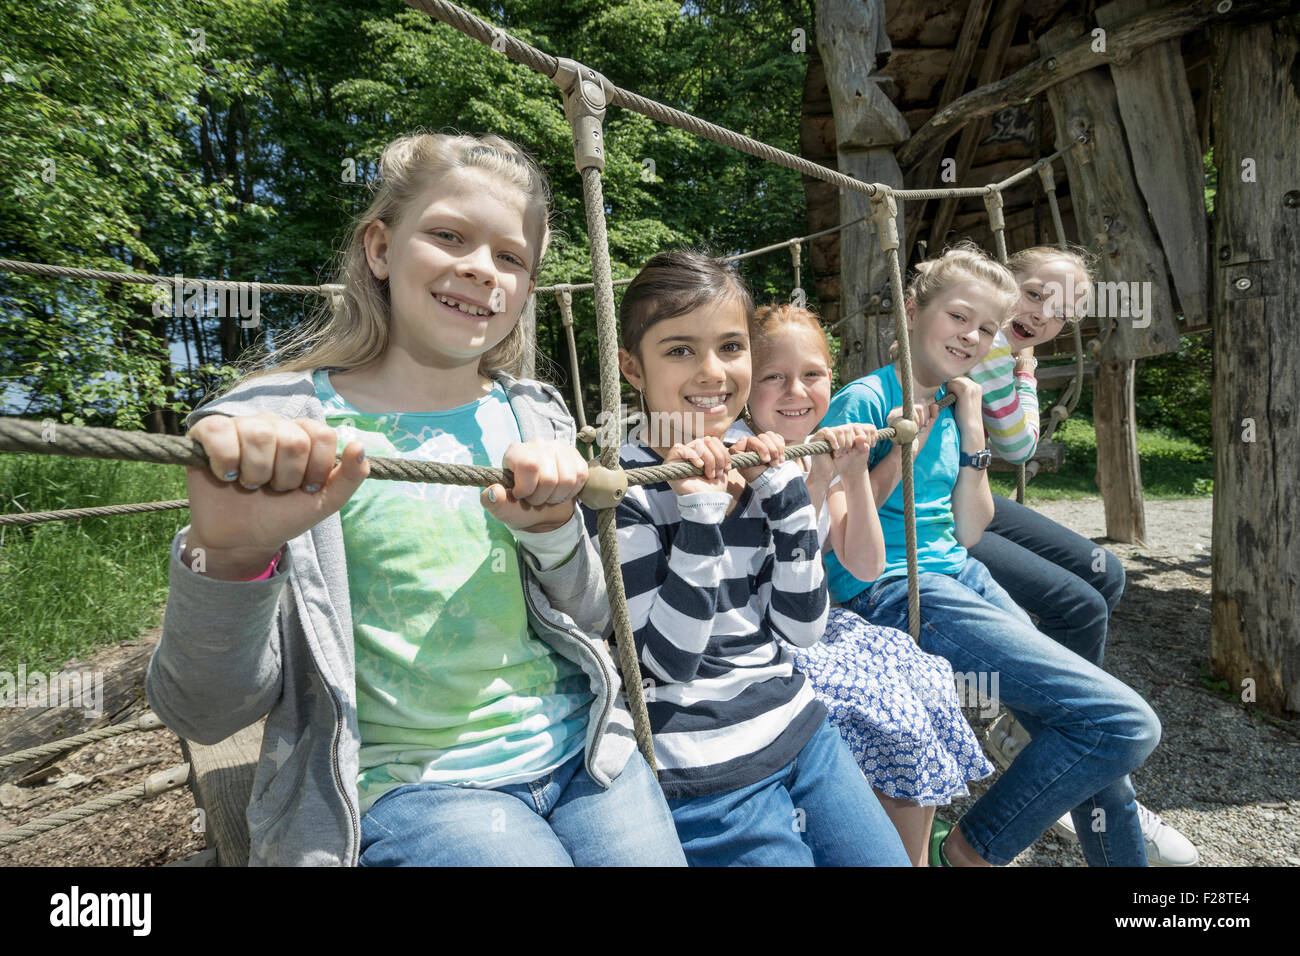 Girls sitting on rope bridge in playground, Munich, Bavaria, Germany - Stock Image